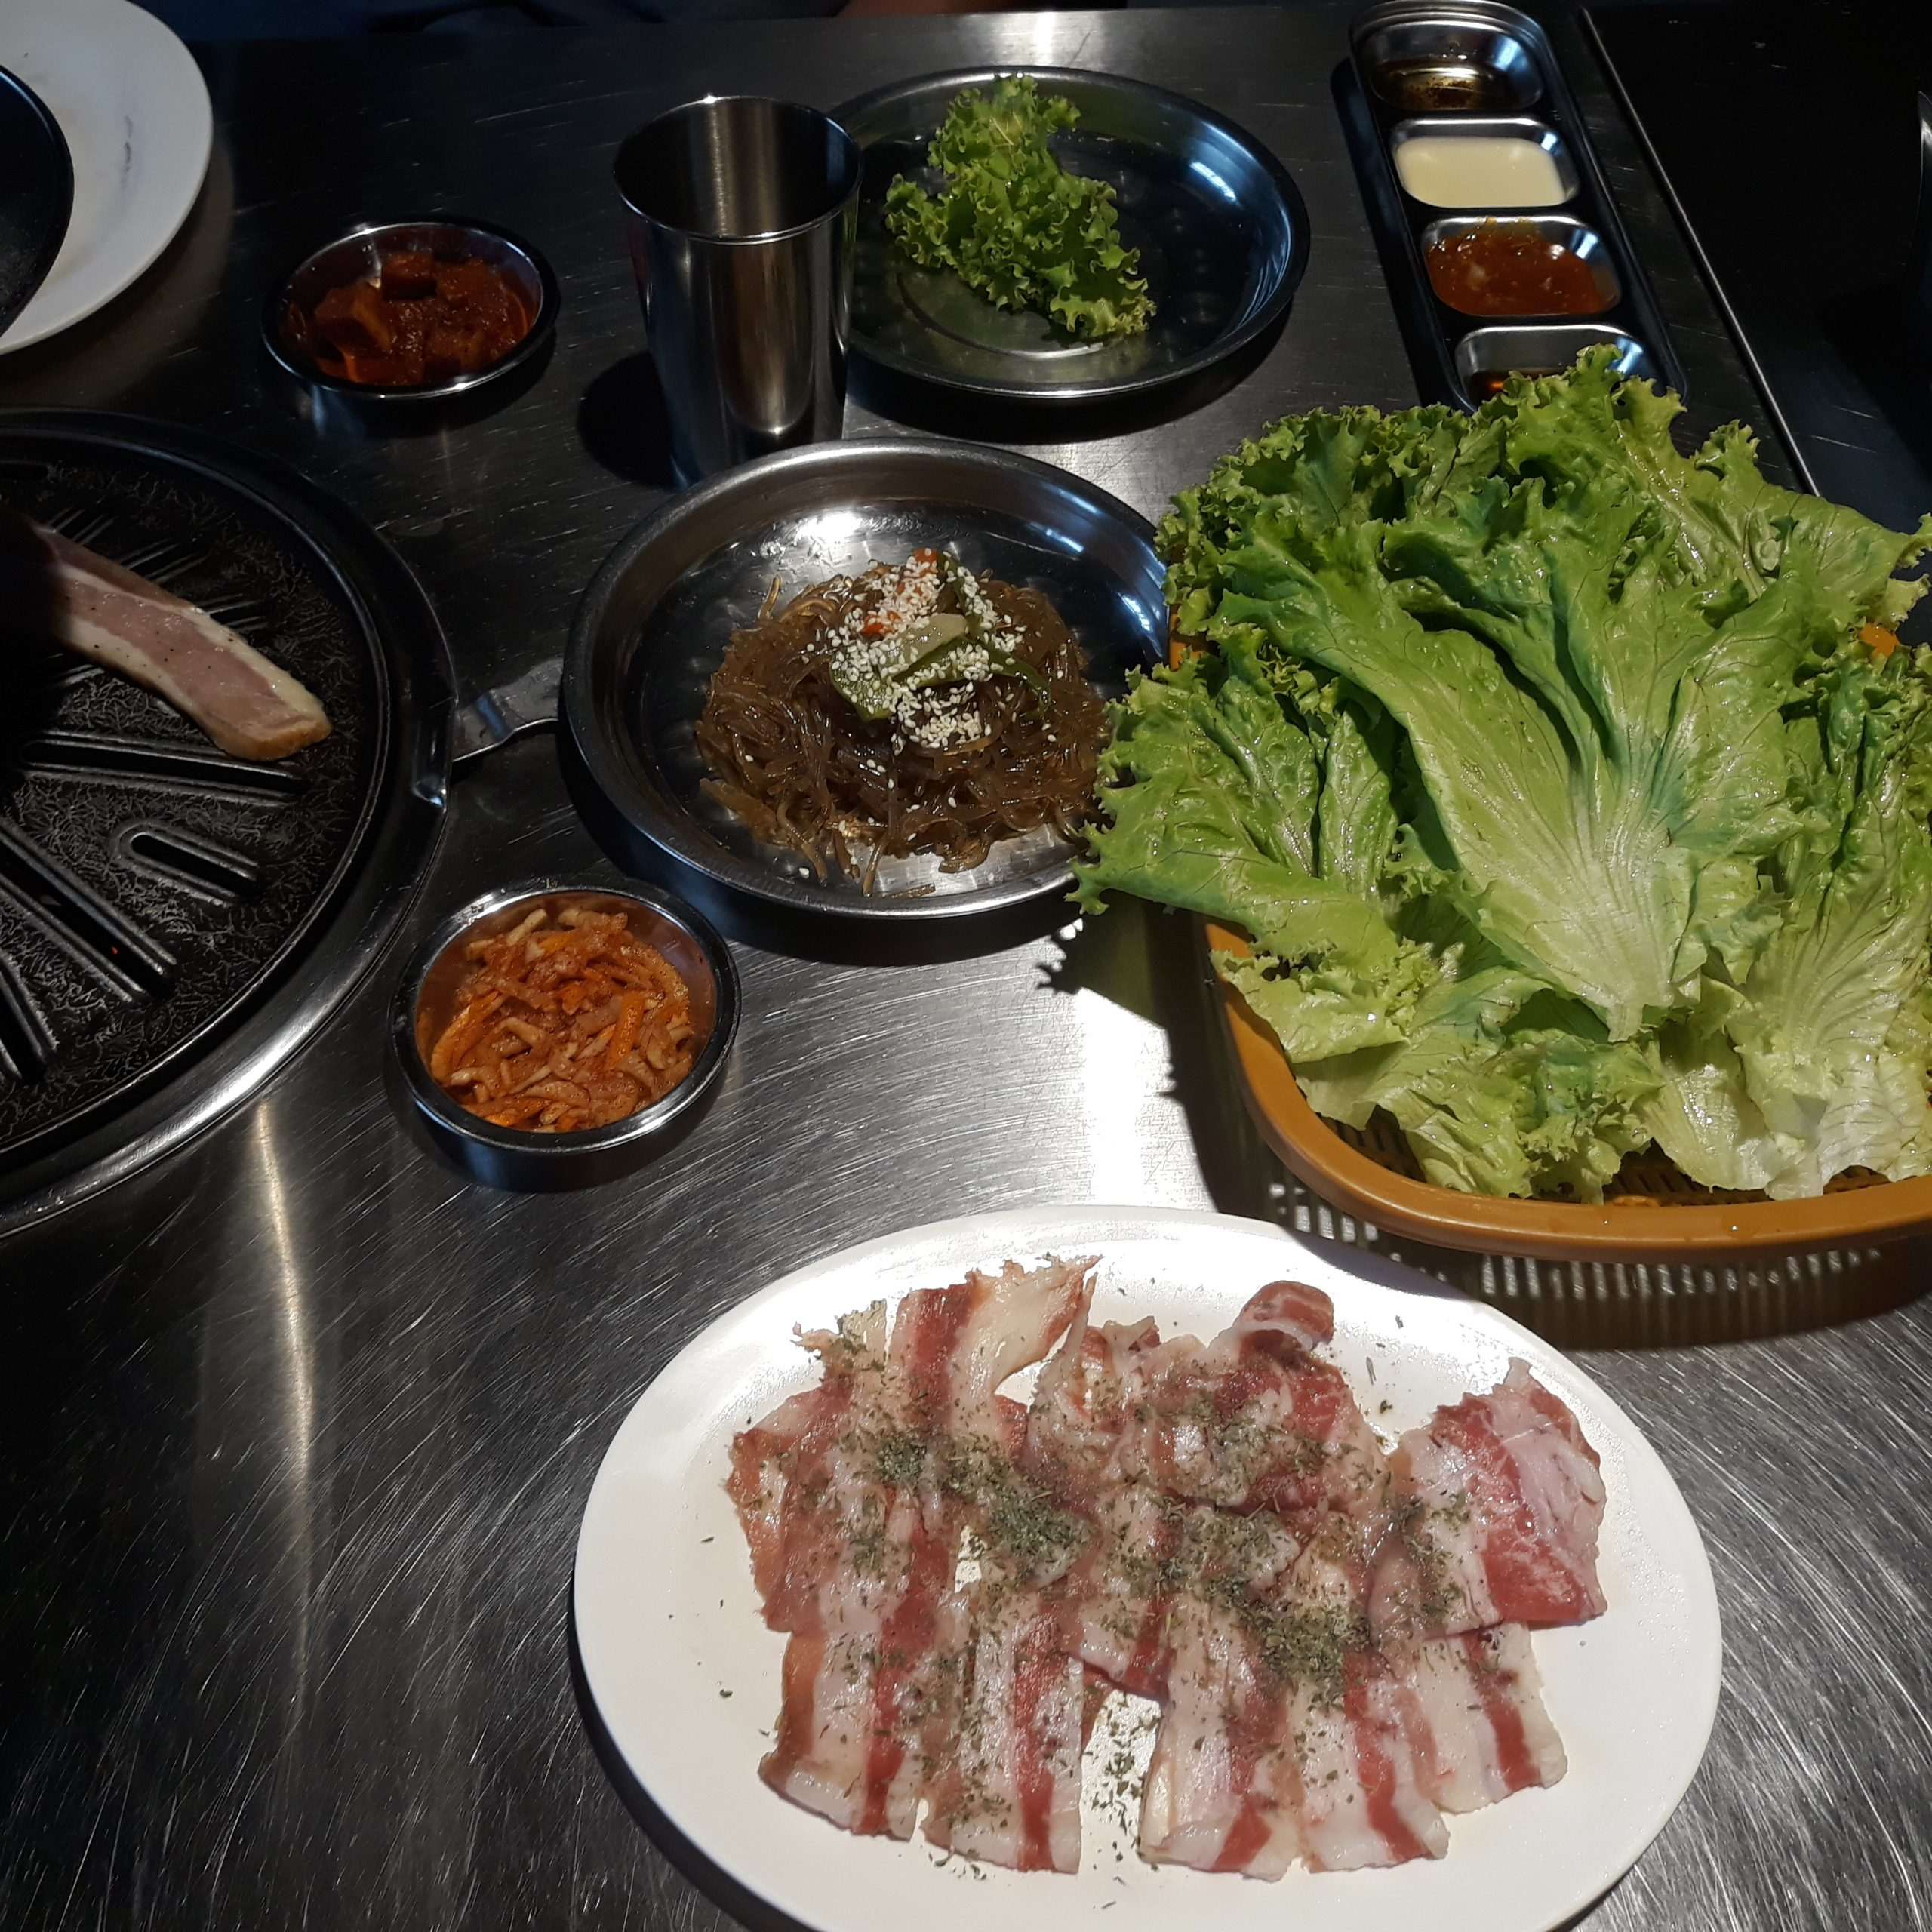 Seoulgyupsal's Herbed Dae Pae with some lettuce and Japchae on the side.